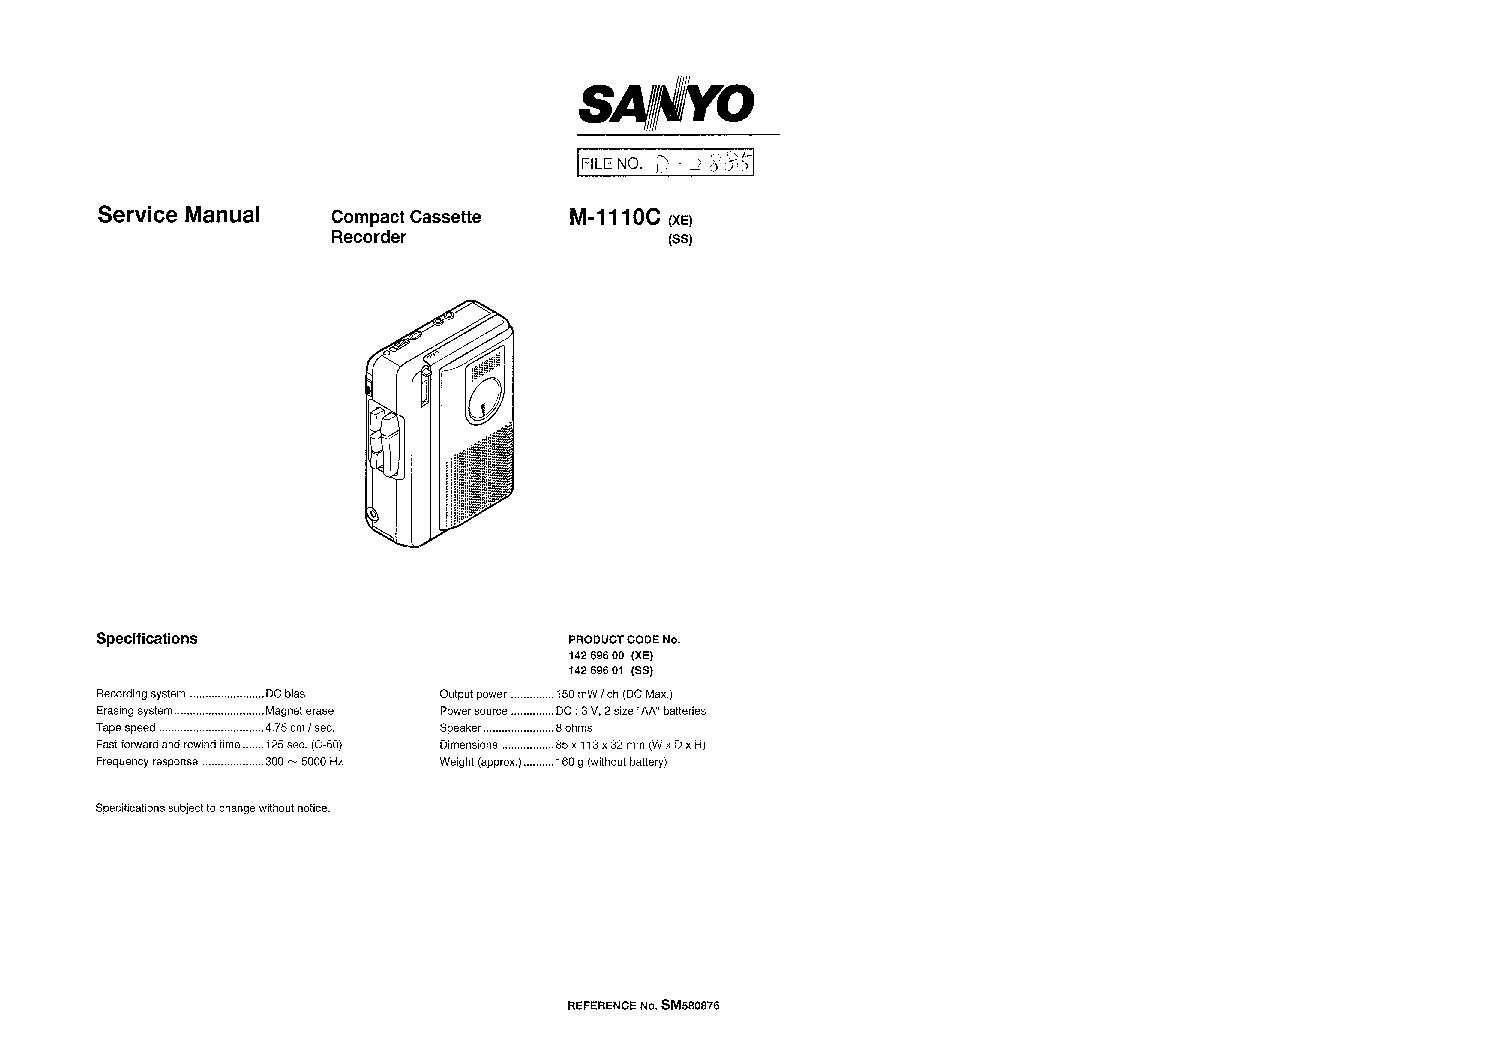 SANYO JA-667AV SCH 2 Service Manual free download